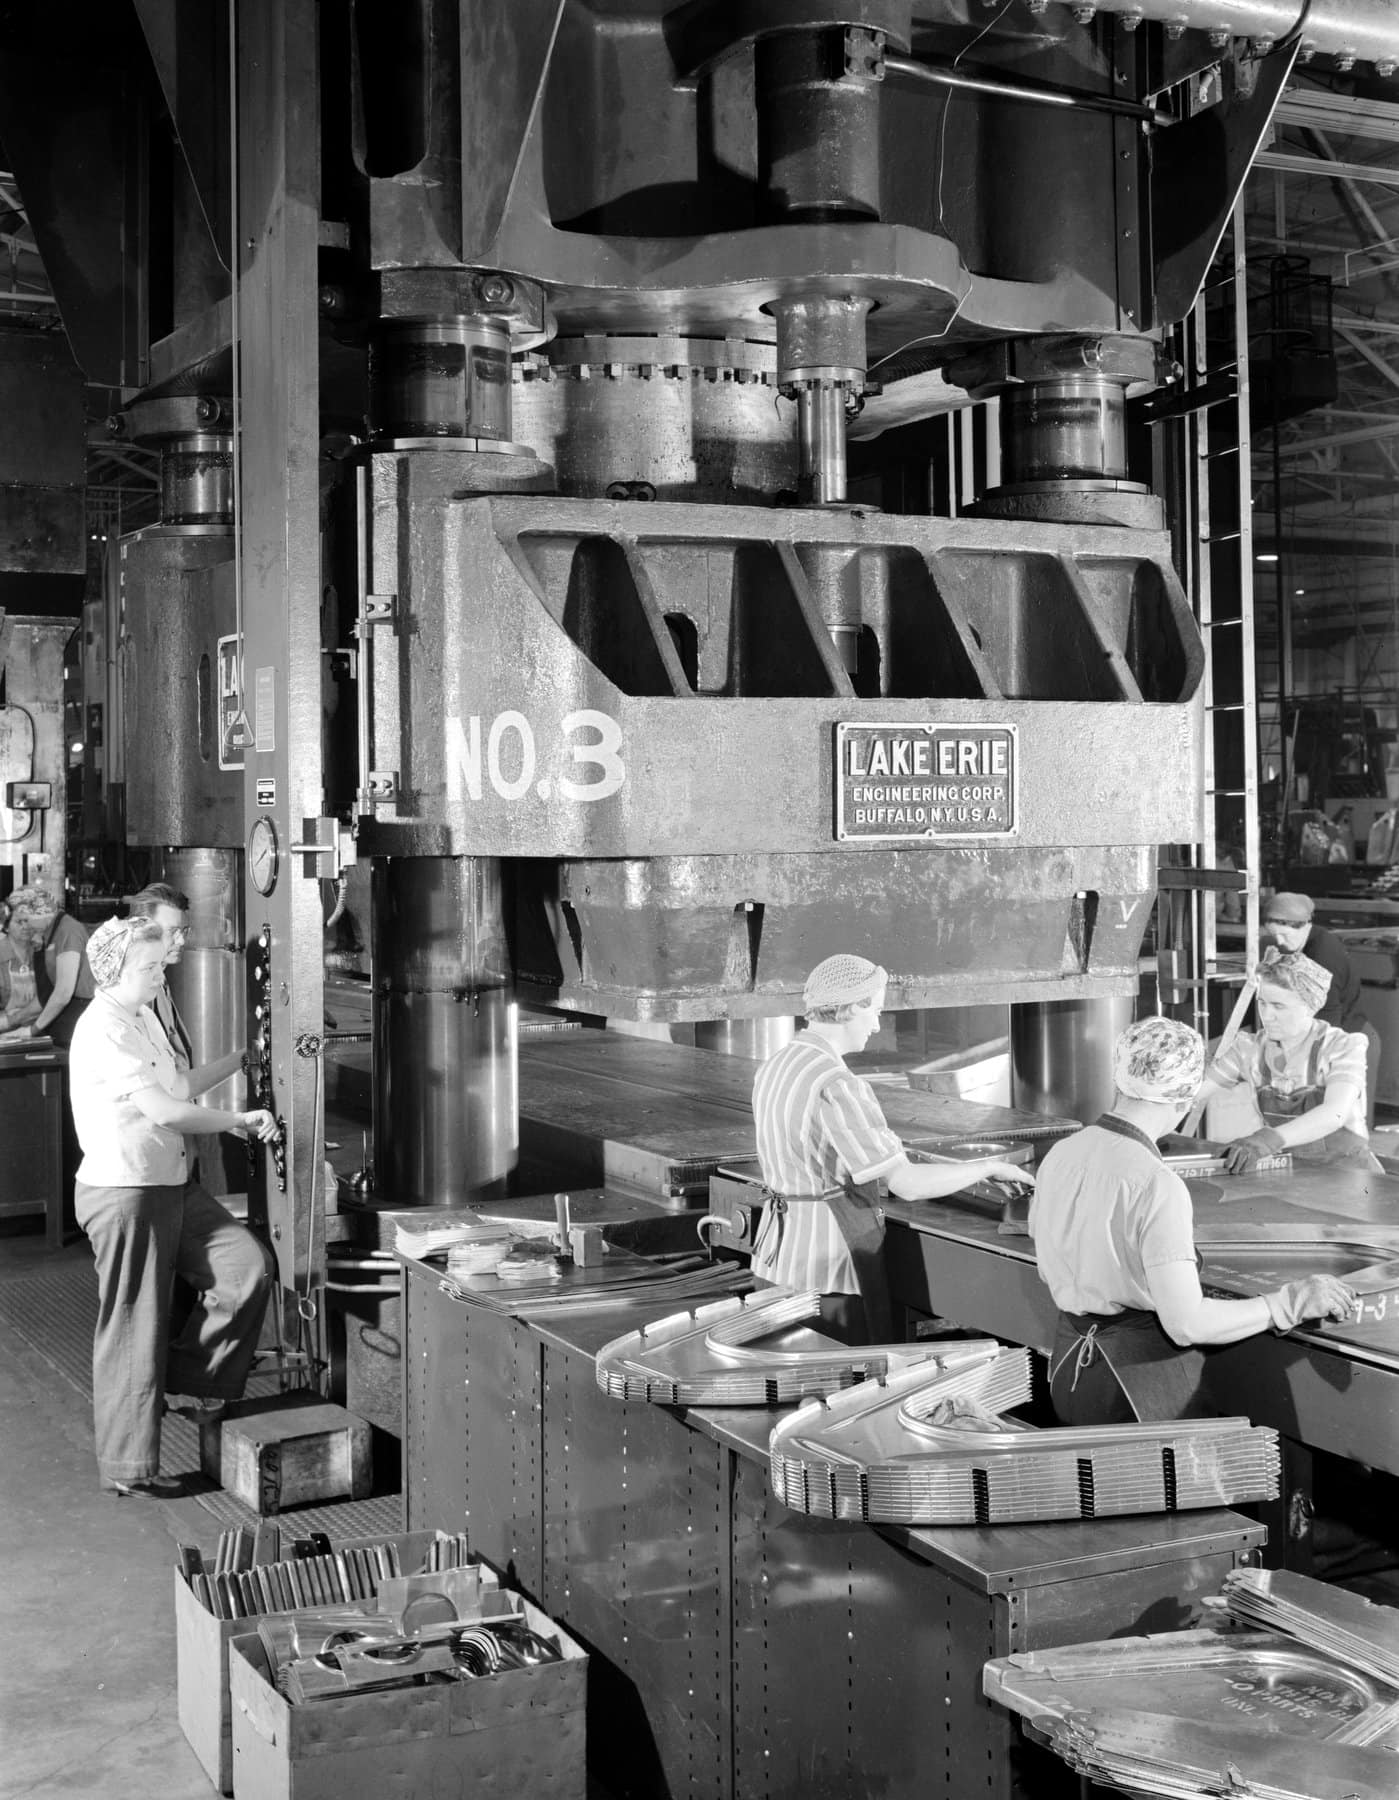 Hydraulic press at Boeing plant in Seattle (1940s)